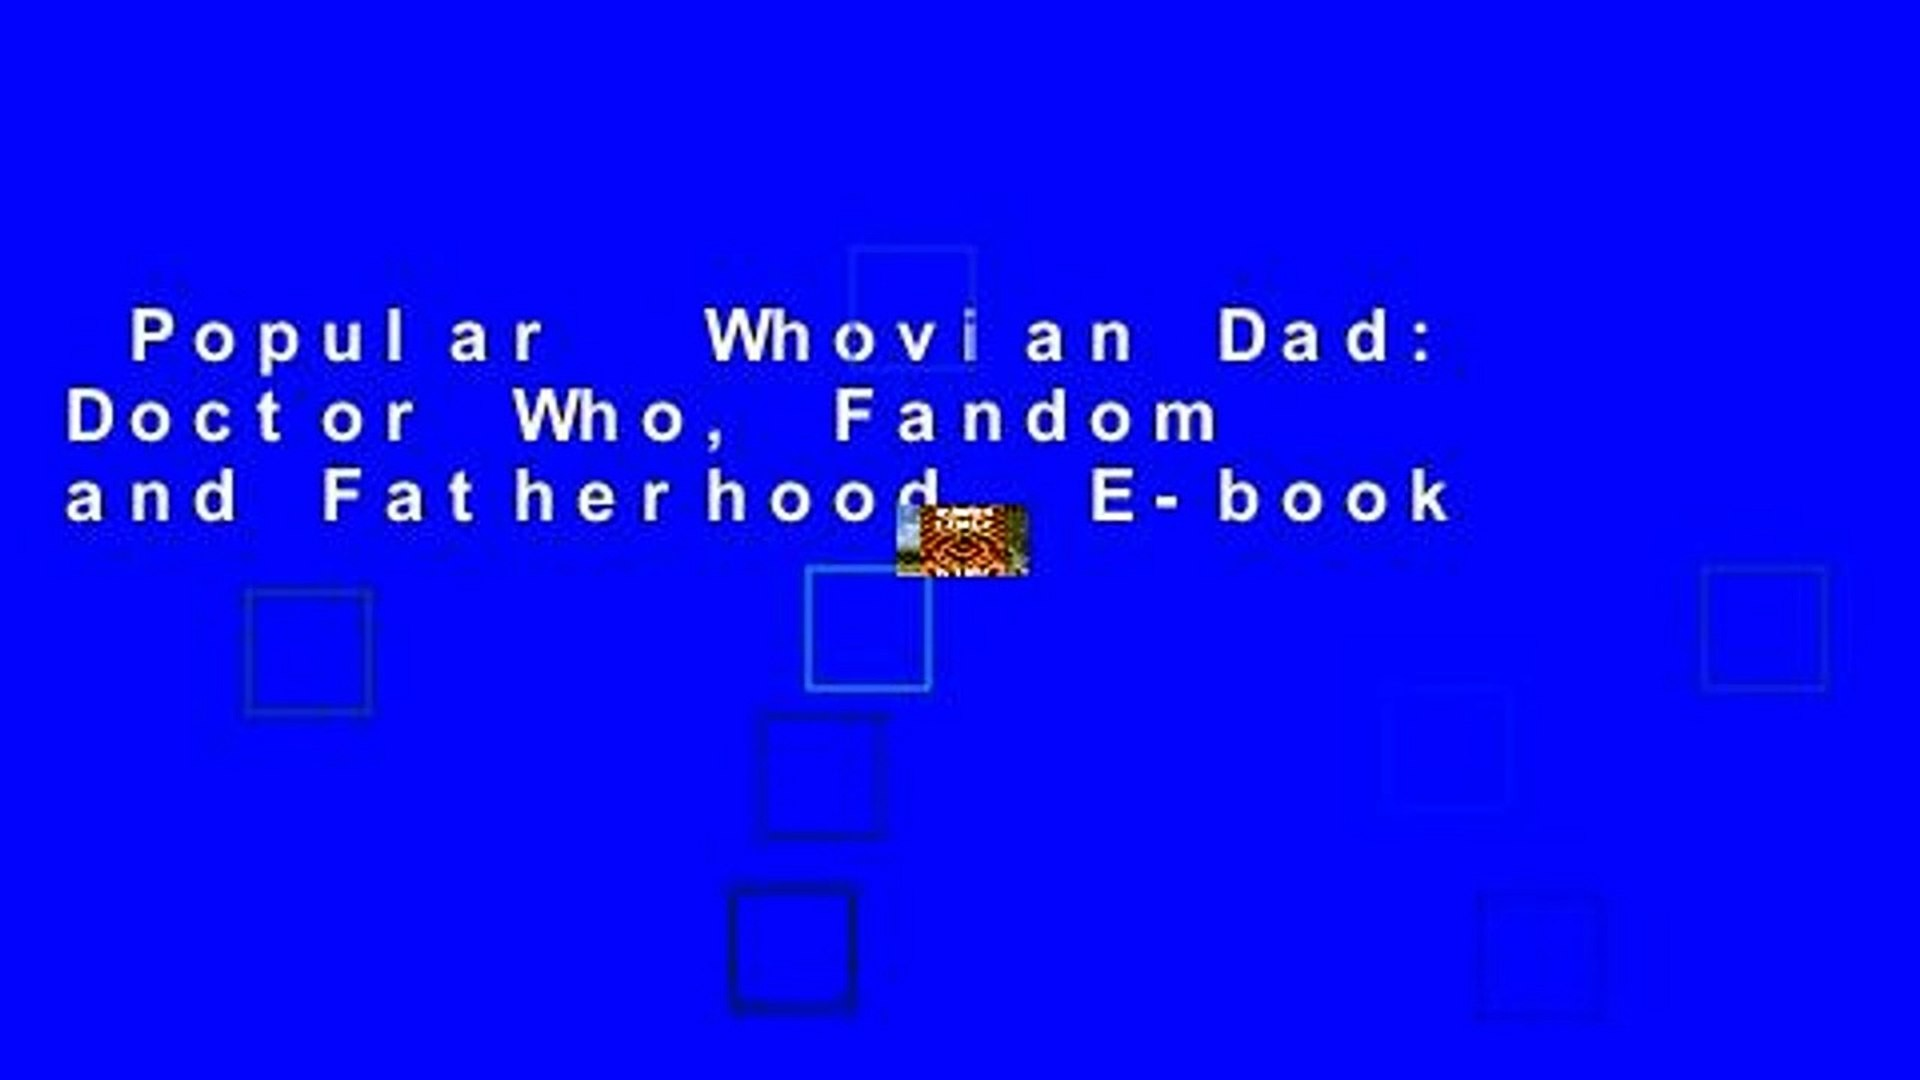 1920x1080 Popular Whovian Dad: Doctor Who, Fandom and Fatherhood E-book - video  dailymotion